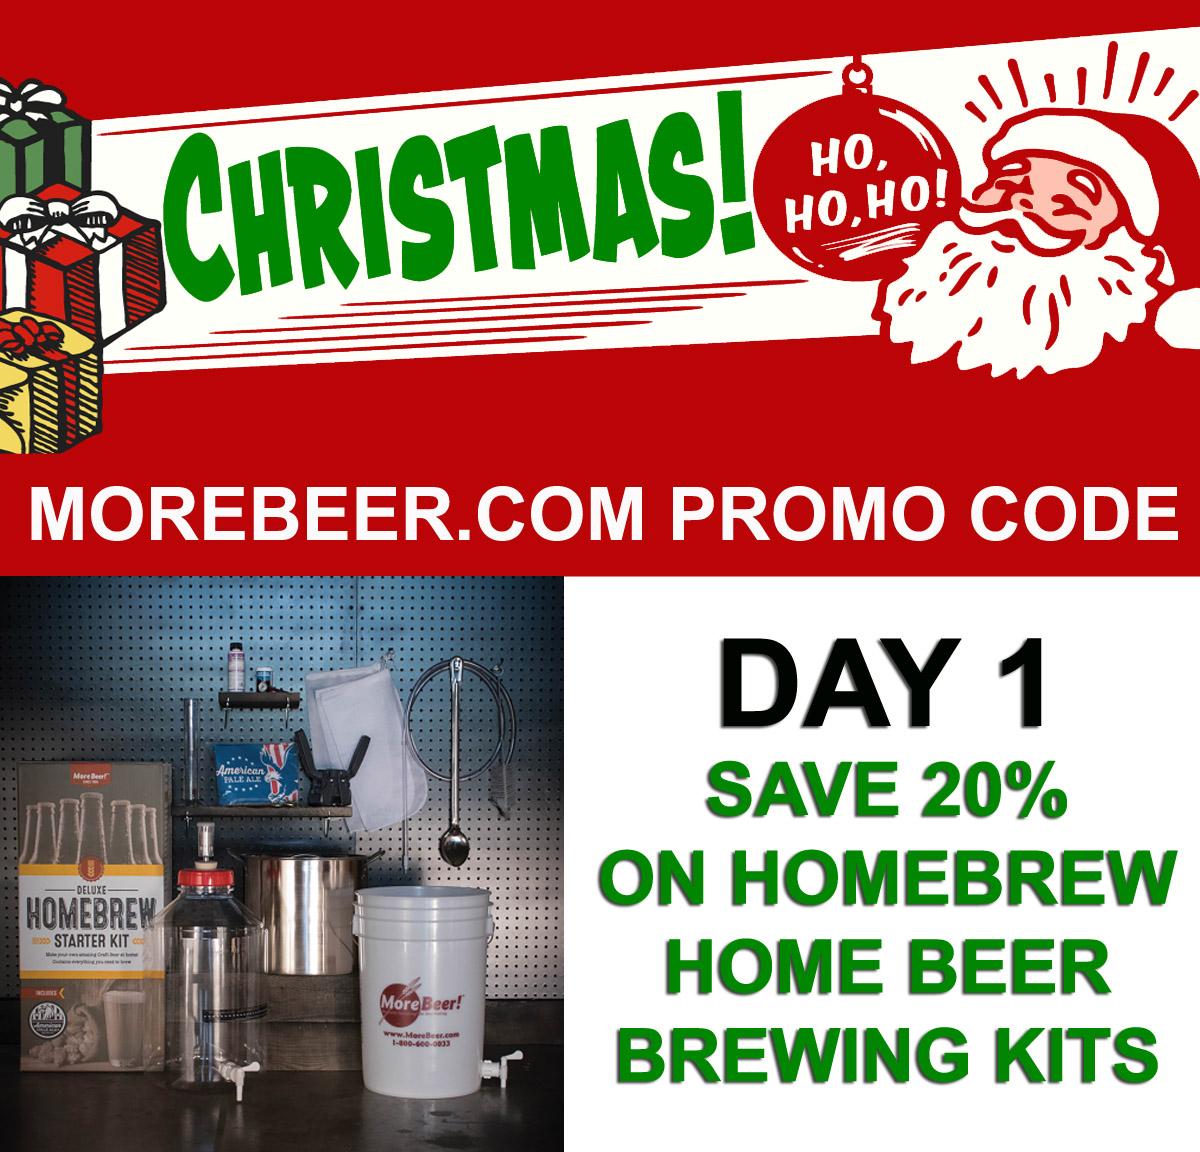 Save 20% On Homebrewing Starter Kits With This MoreBeer.com Promo Code Coupon Code